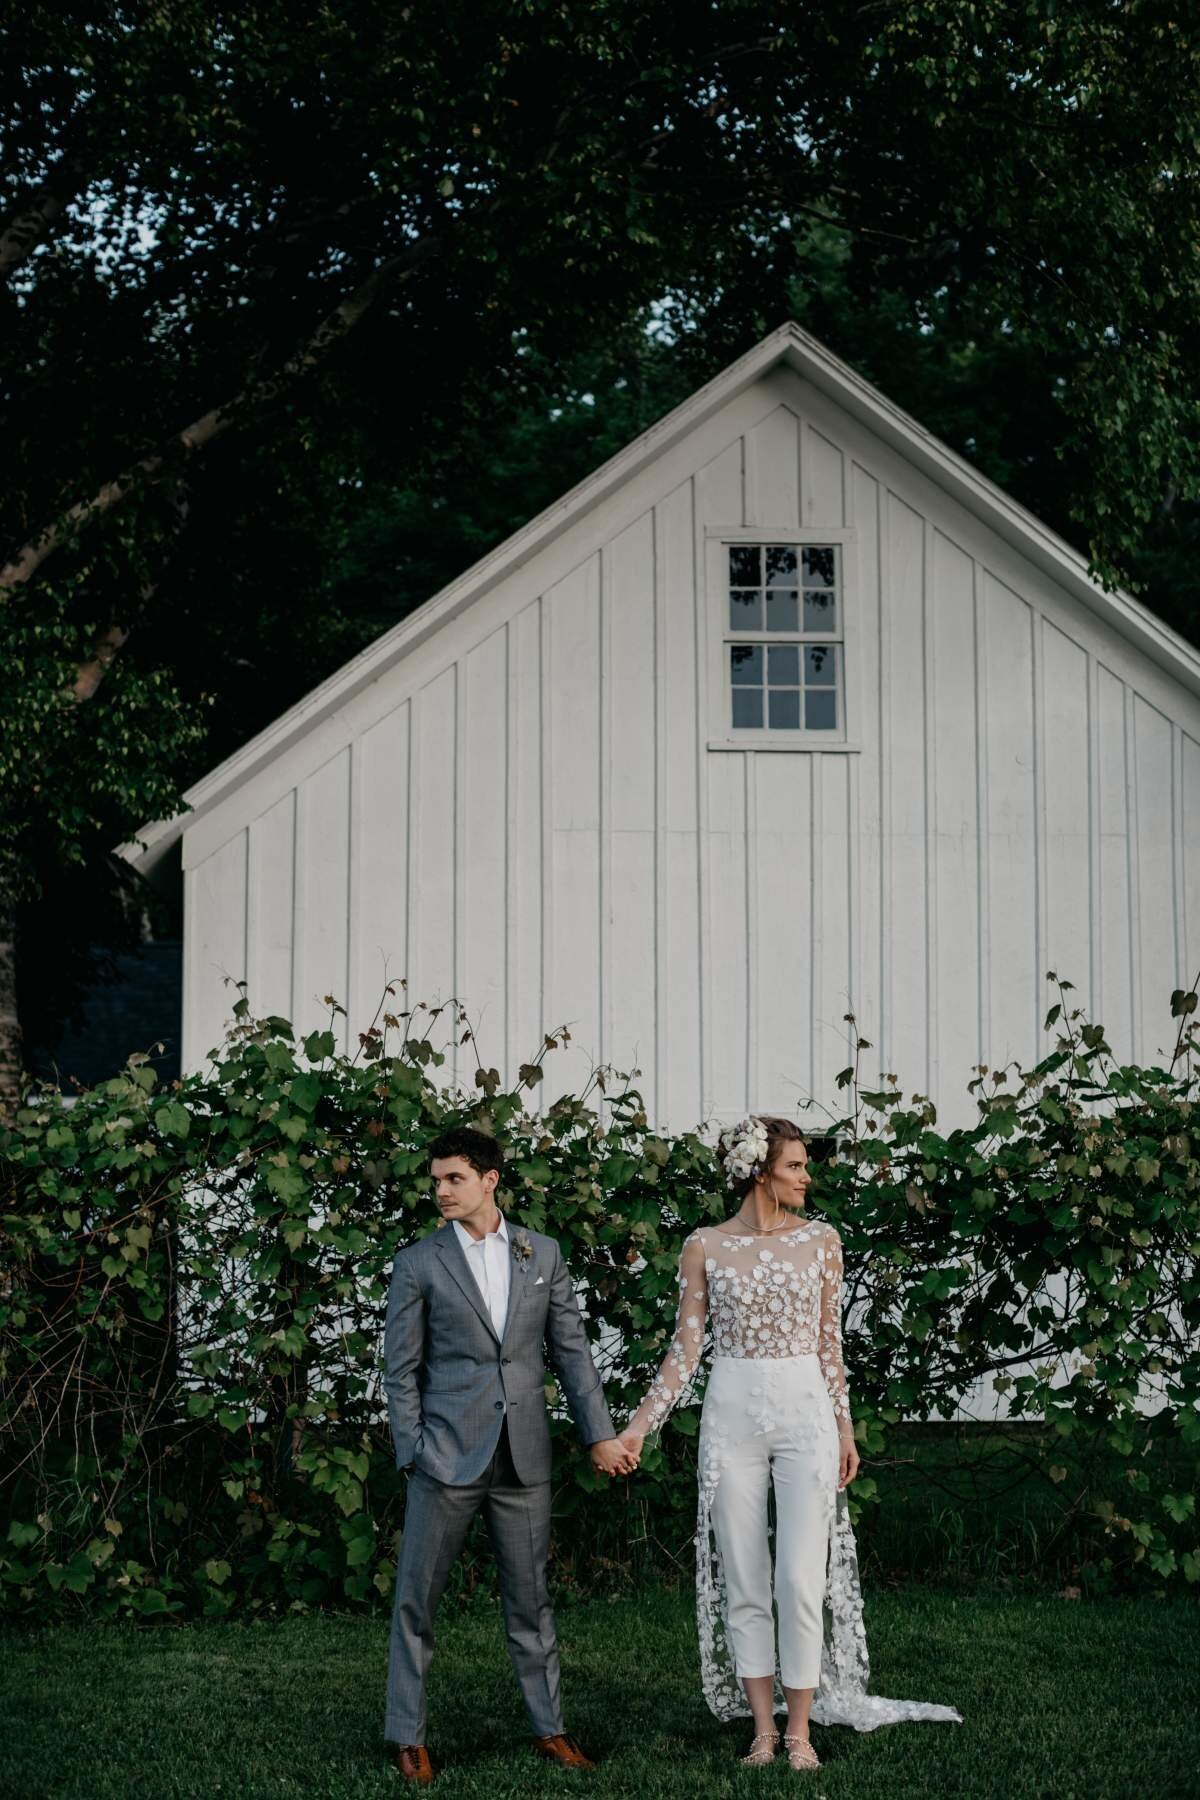 Northern-Michigan-Barn-Wedding-Venue